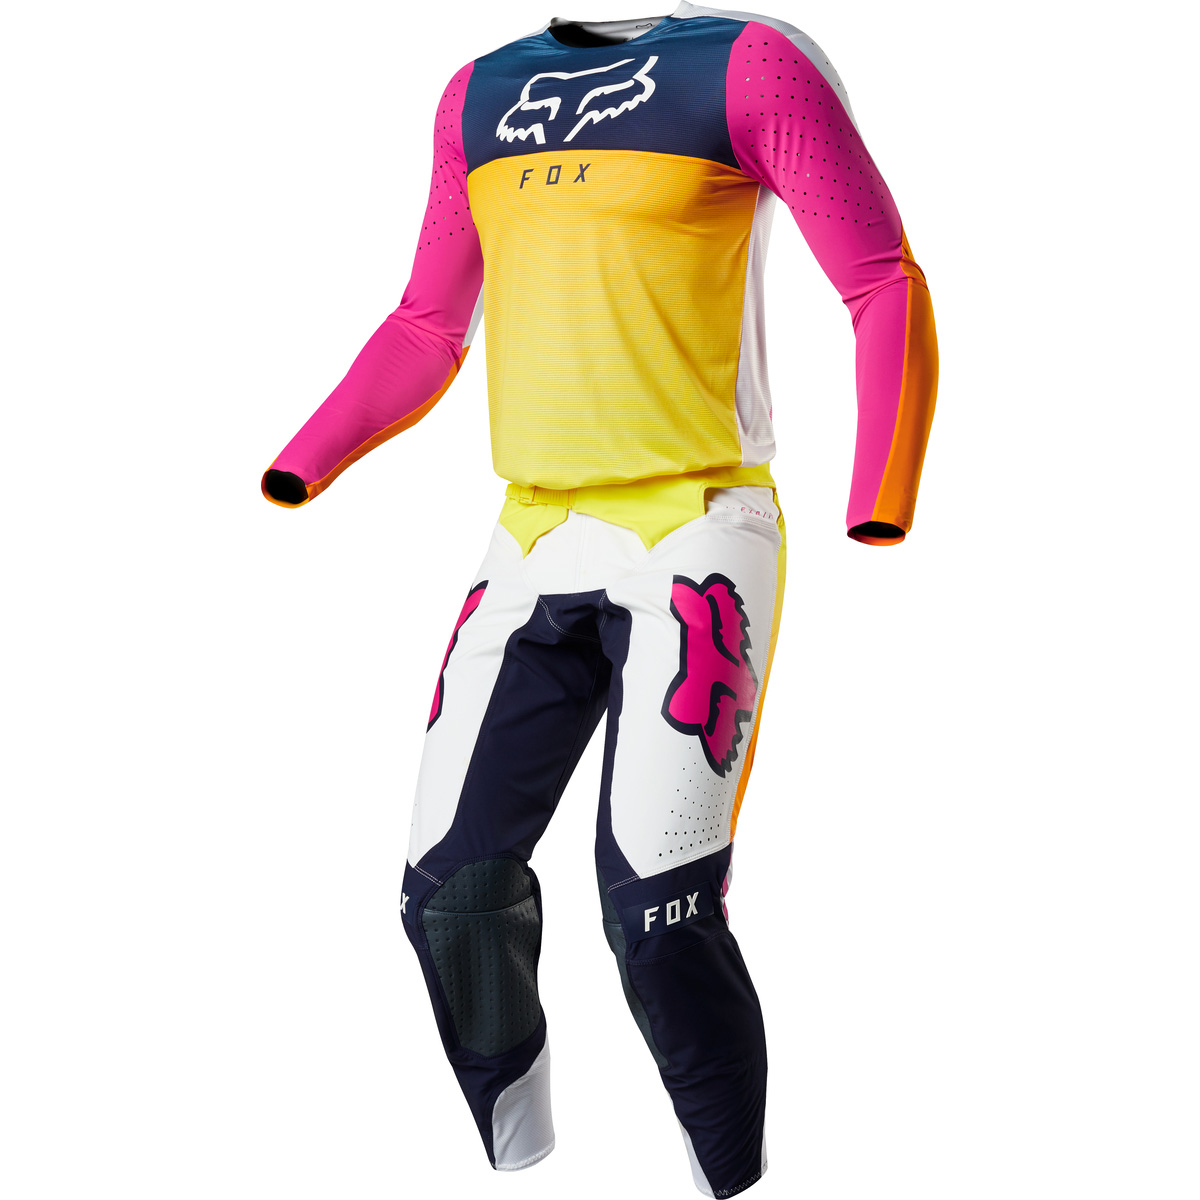 2019 Fox Racing Flexair Limited Edition Idol A1 Gear Kit Multiple Sixstar Racing